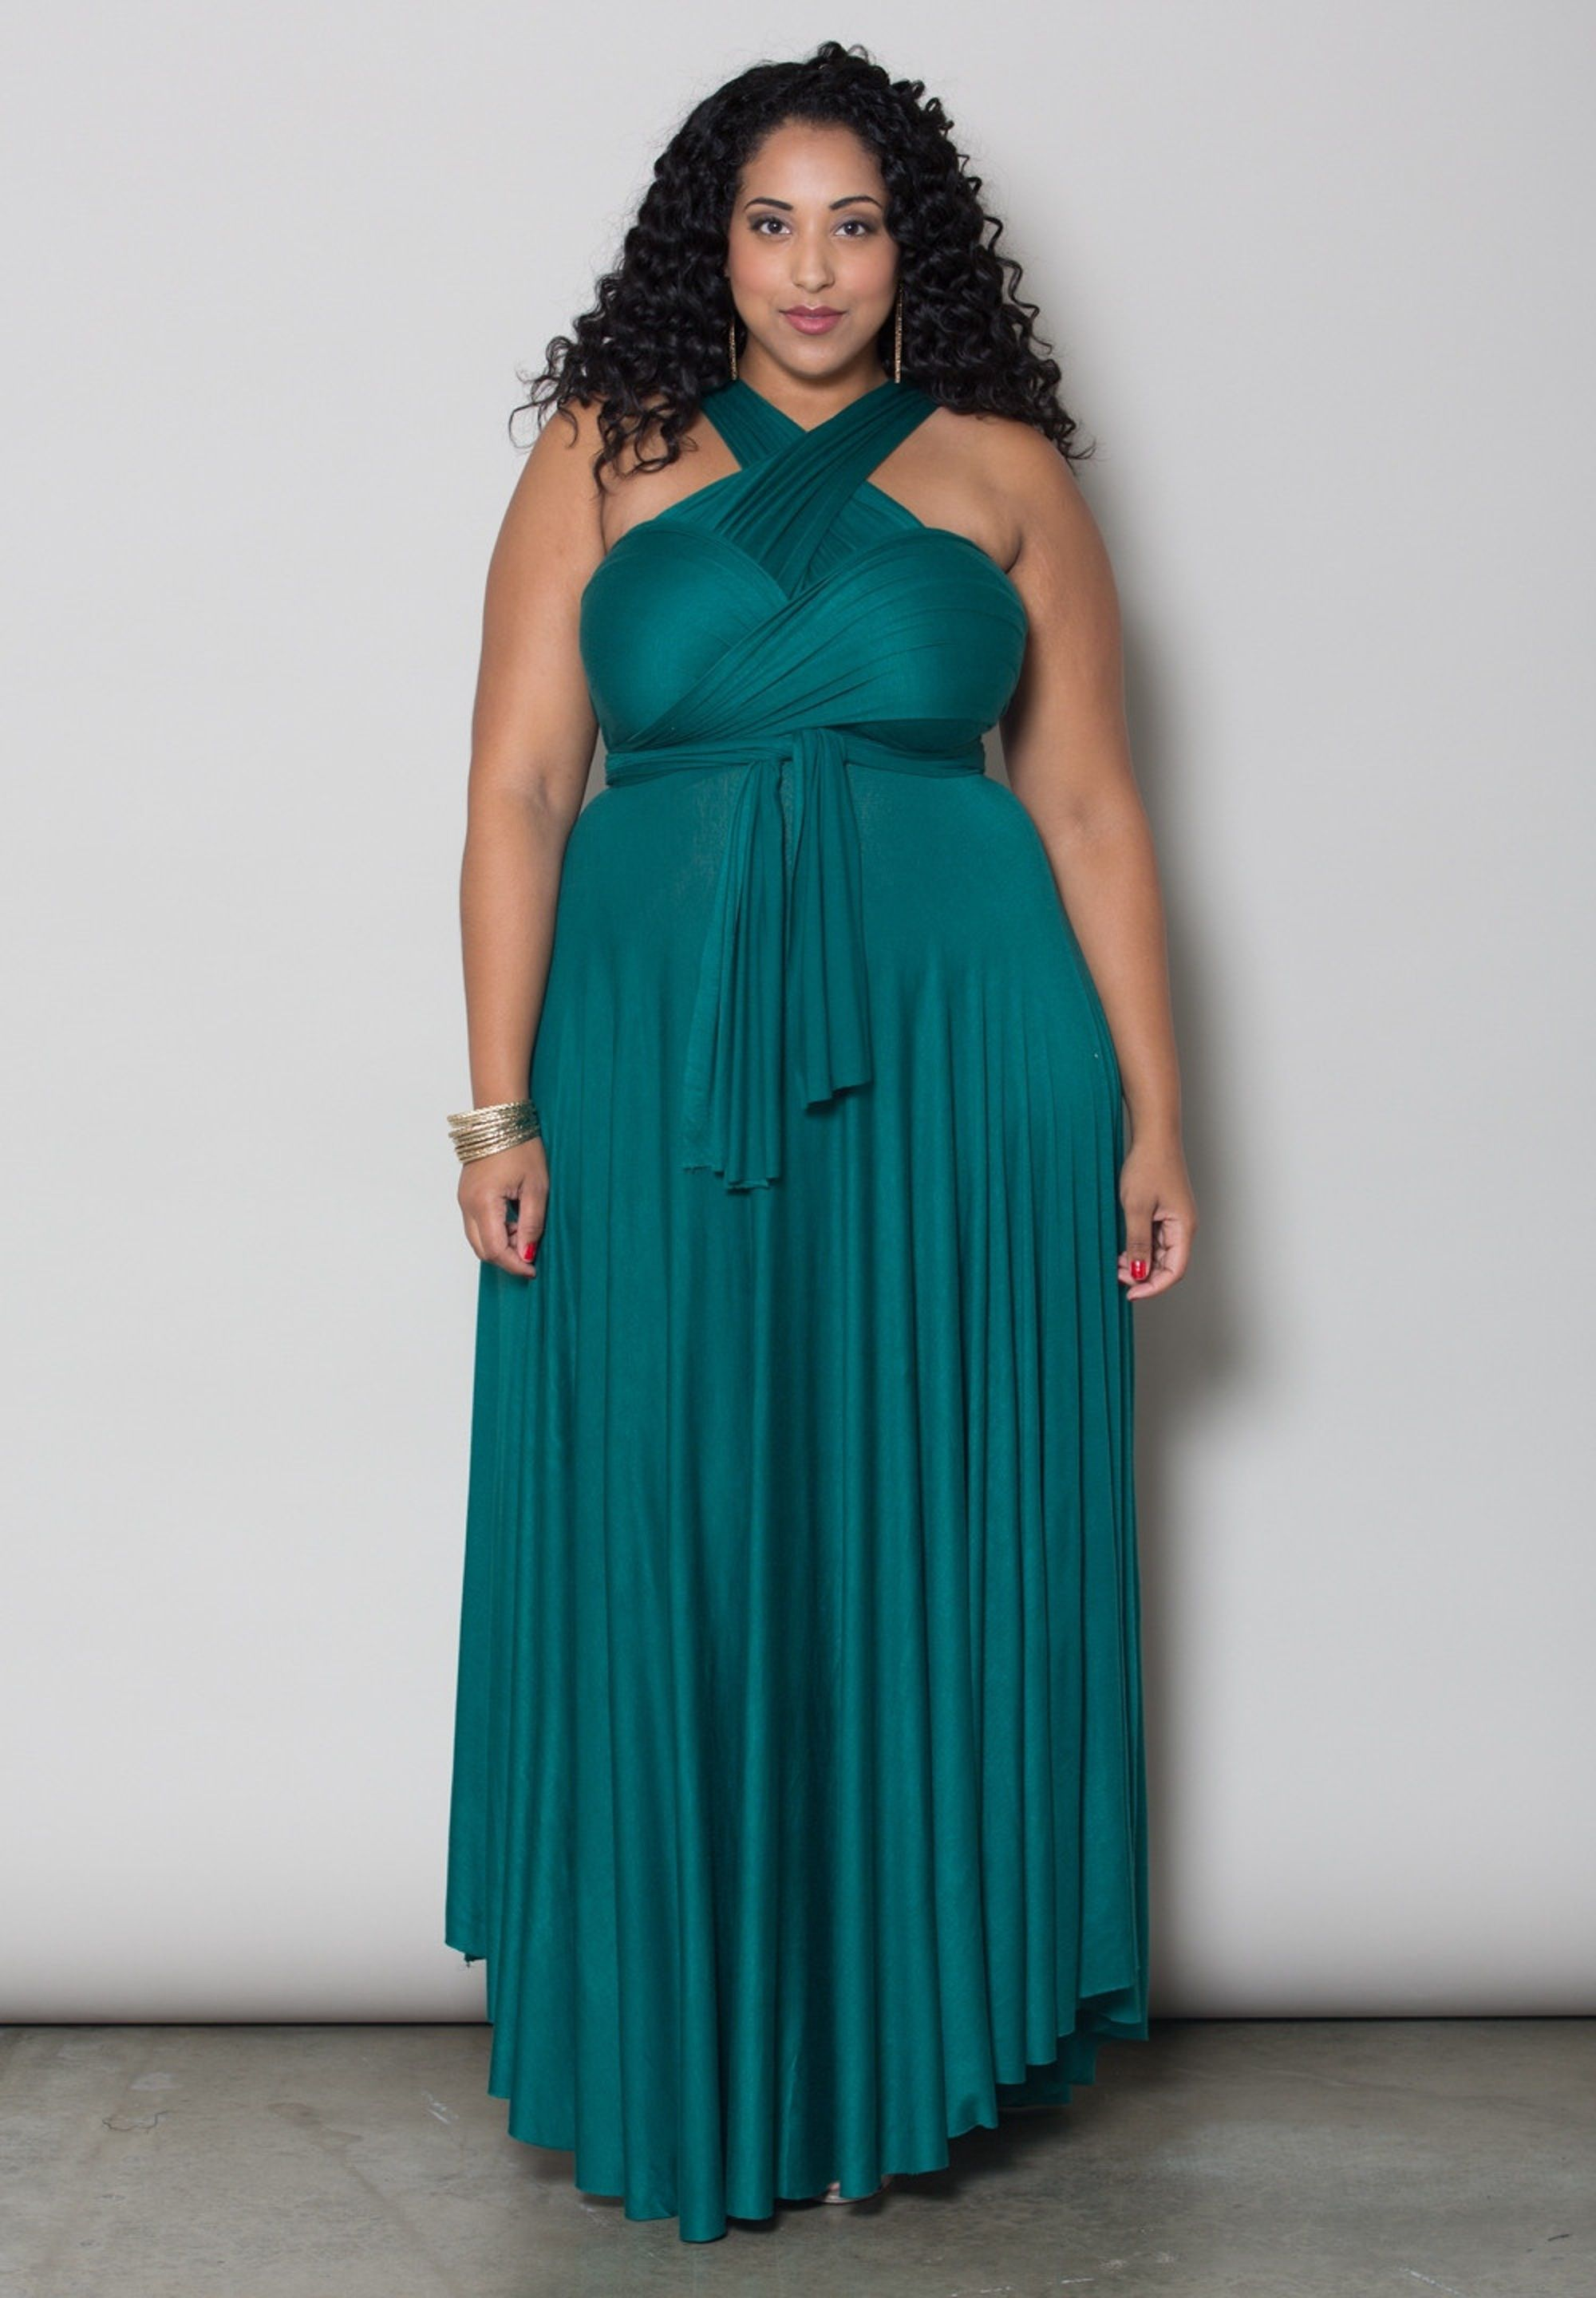 b6434591623 plus-size-fashion Plus Size Eternity Maxi Convertible Dress -  SWAKdesigns.com - green 9   1X 3X   Free Returns - 16